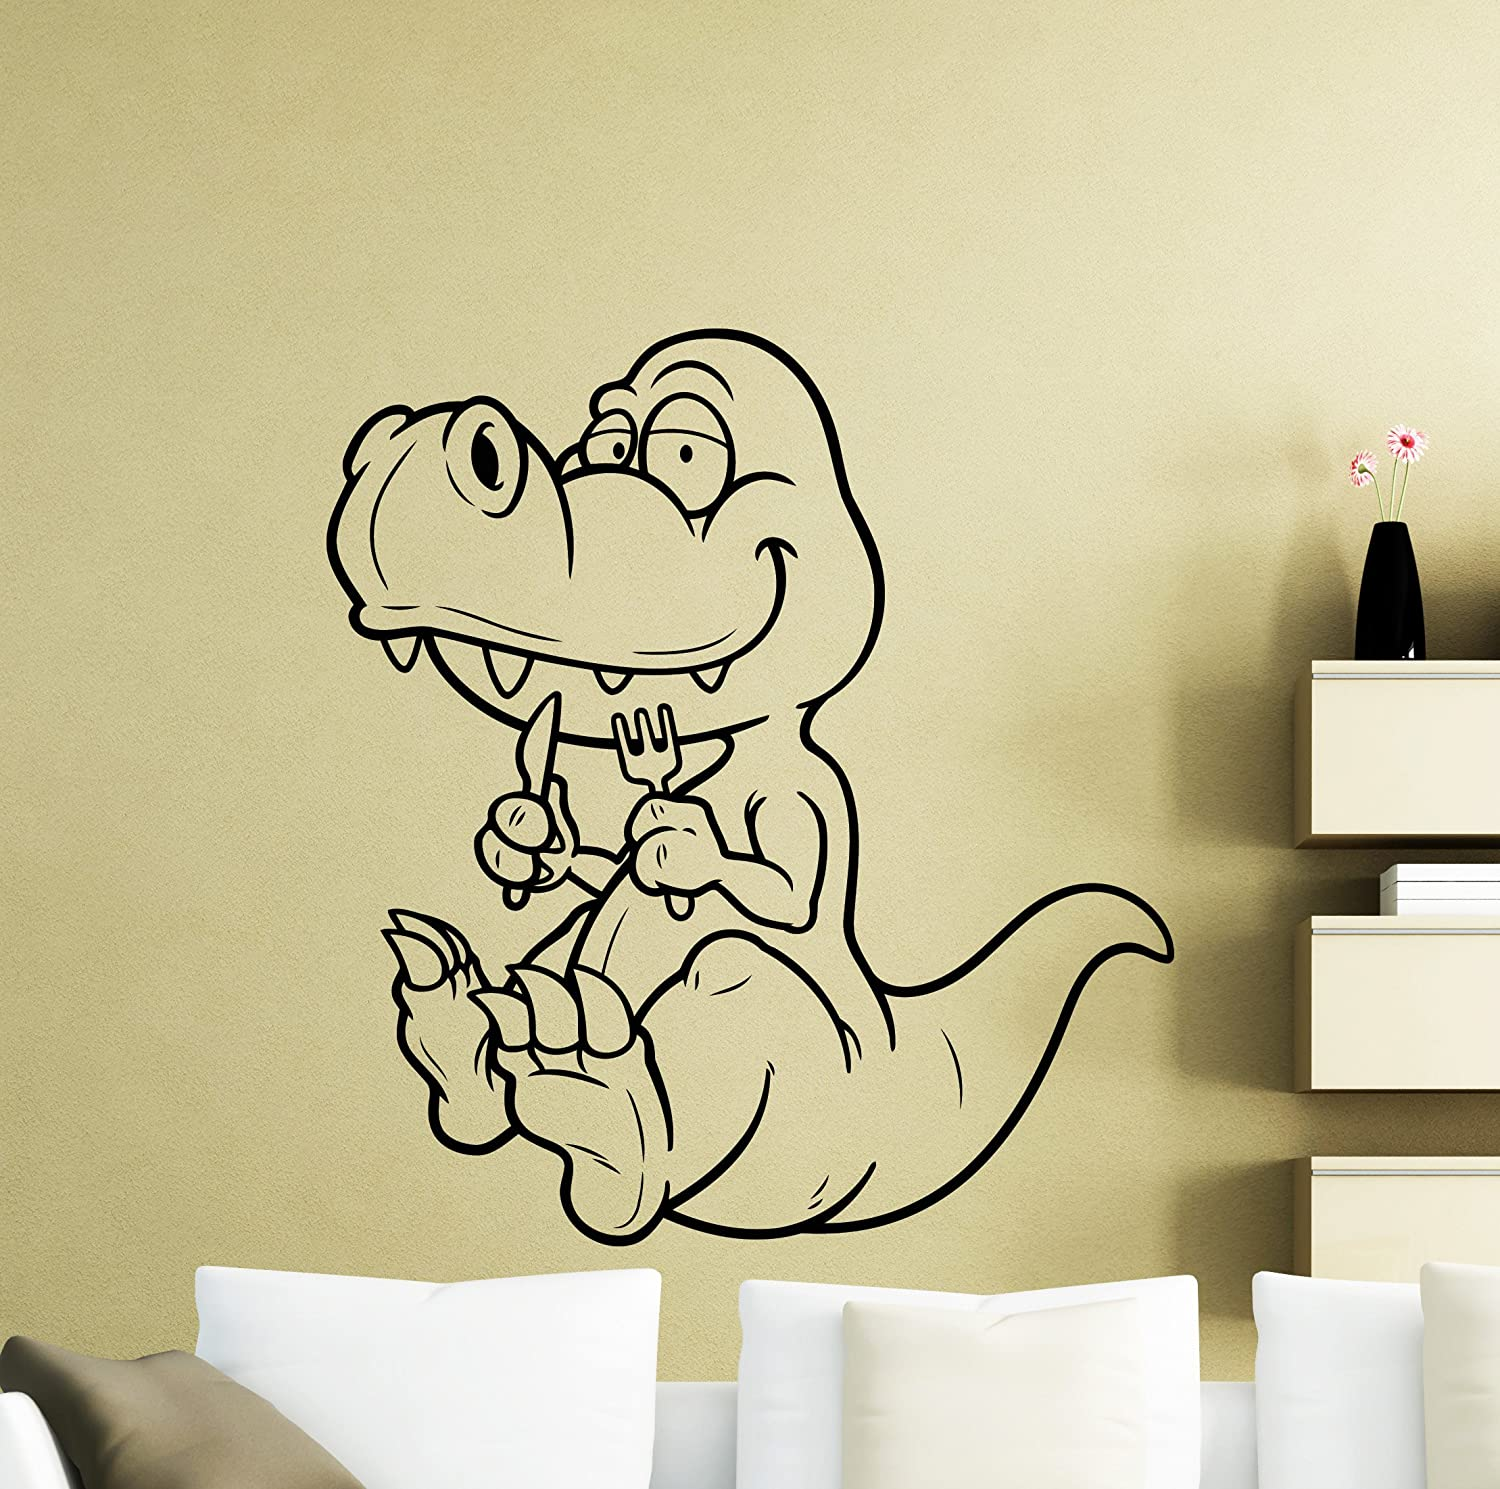 Amazon.com: Cartoon Dinosaur Wall Decal Nursery Vinyl Sticker Home ...